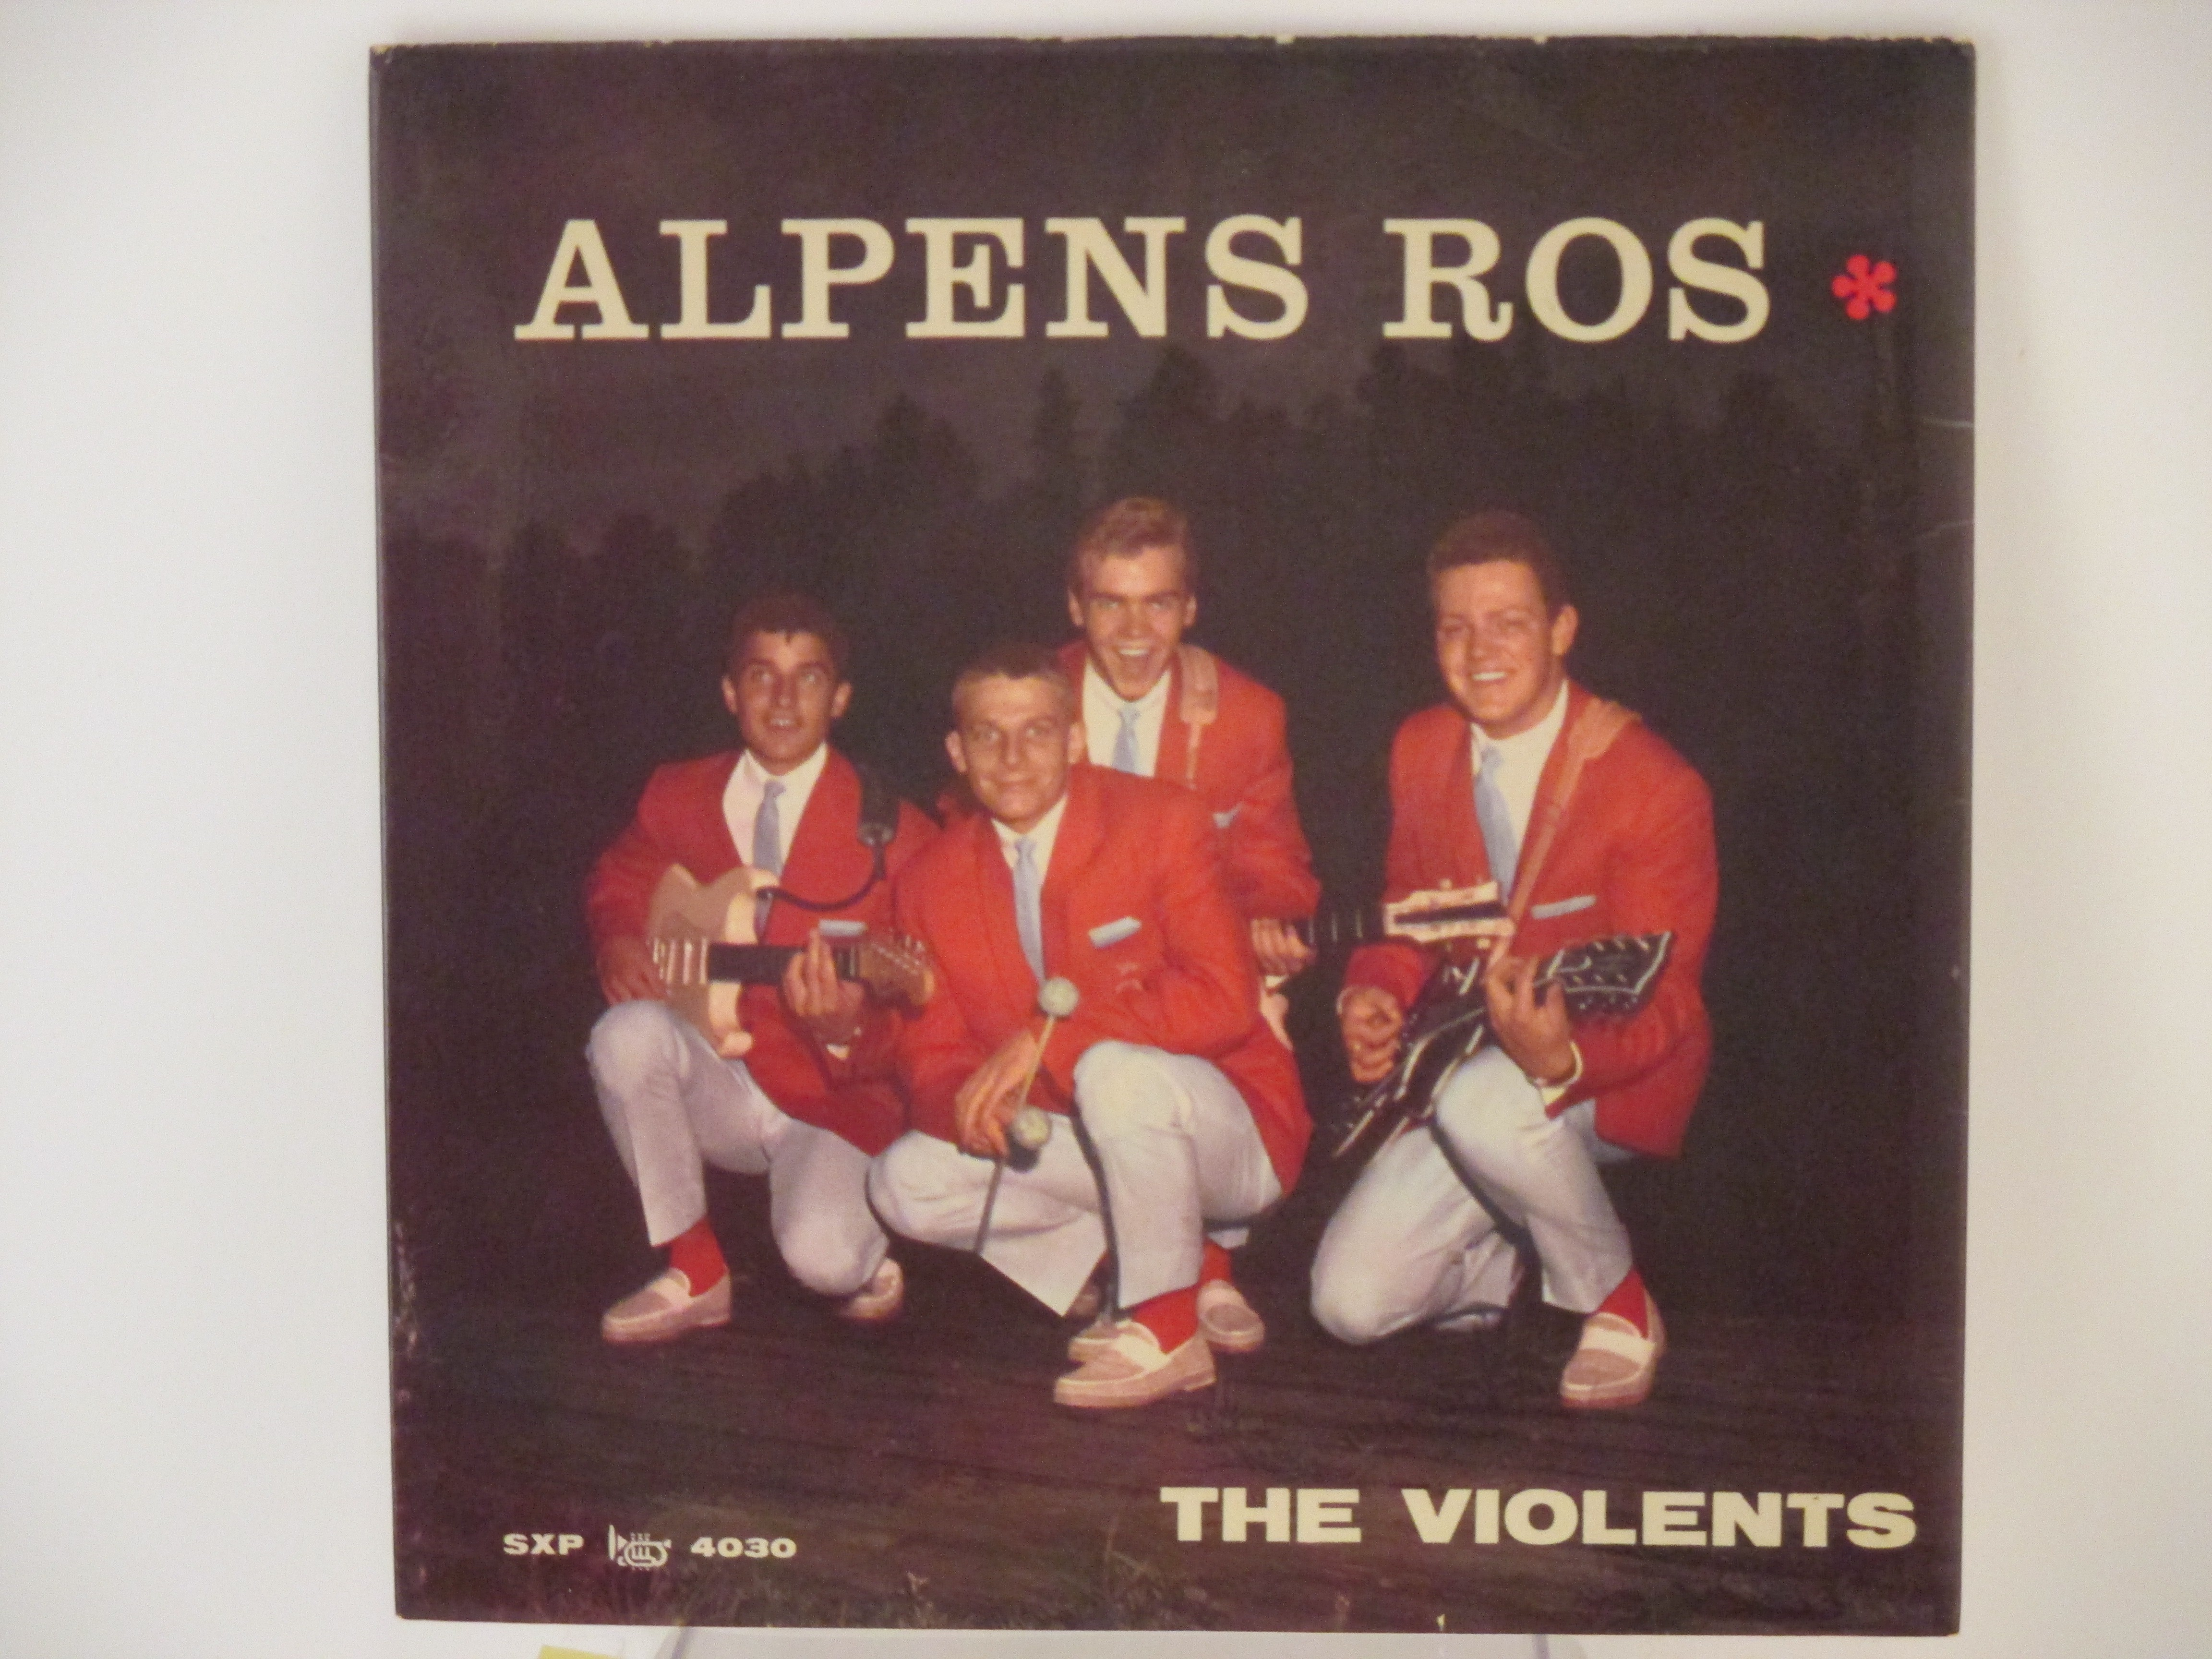 VIOLENTS : (EP) Alpens ros / Cindy, Oh Cindy / Monkey serenade / Moonlight walk